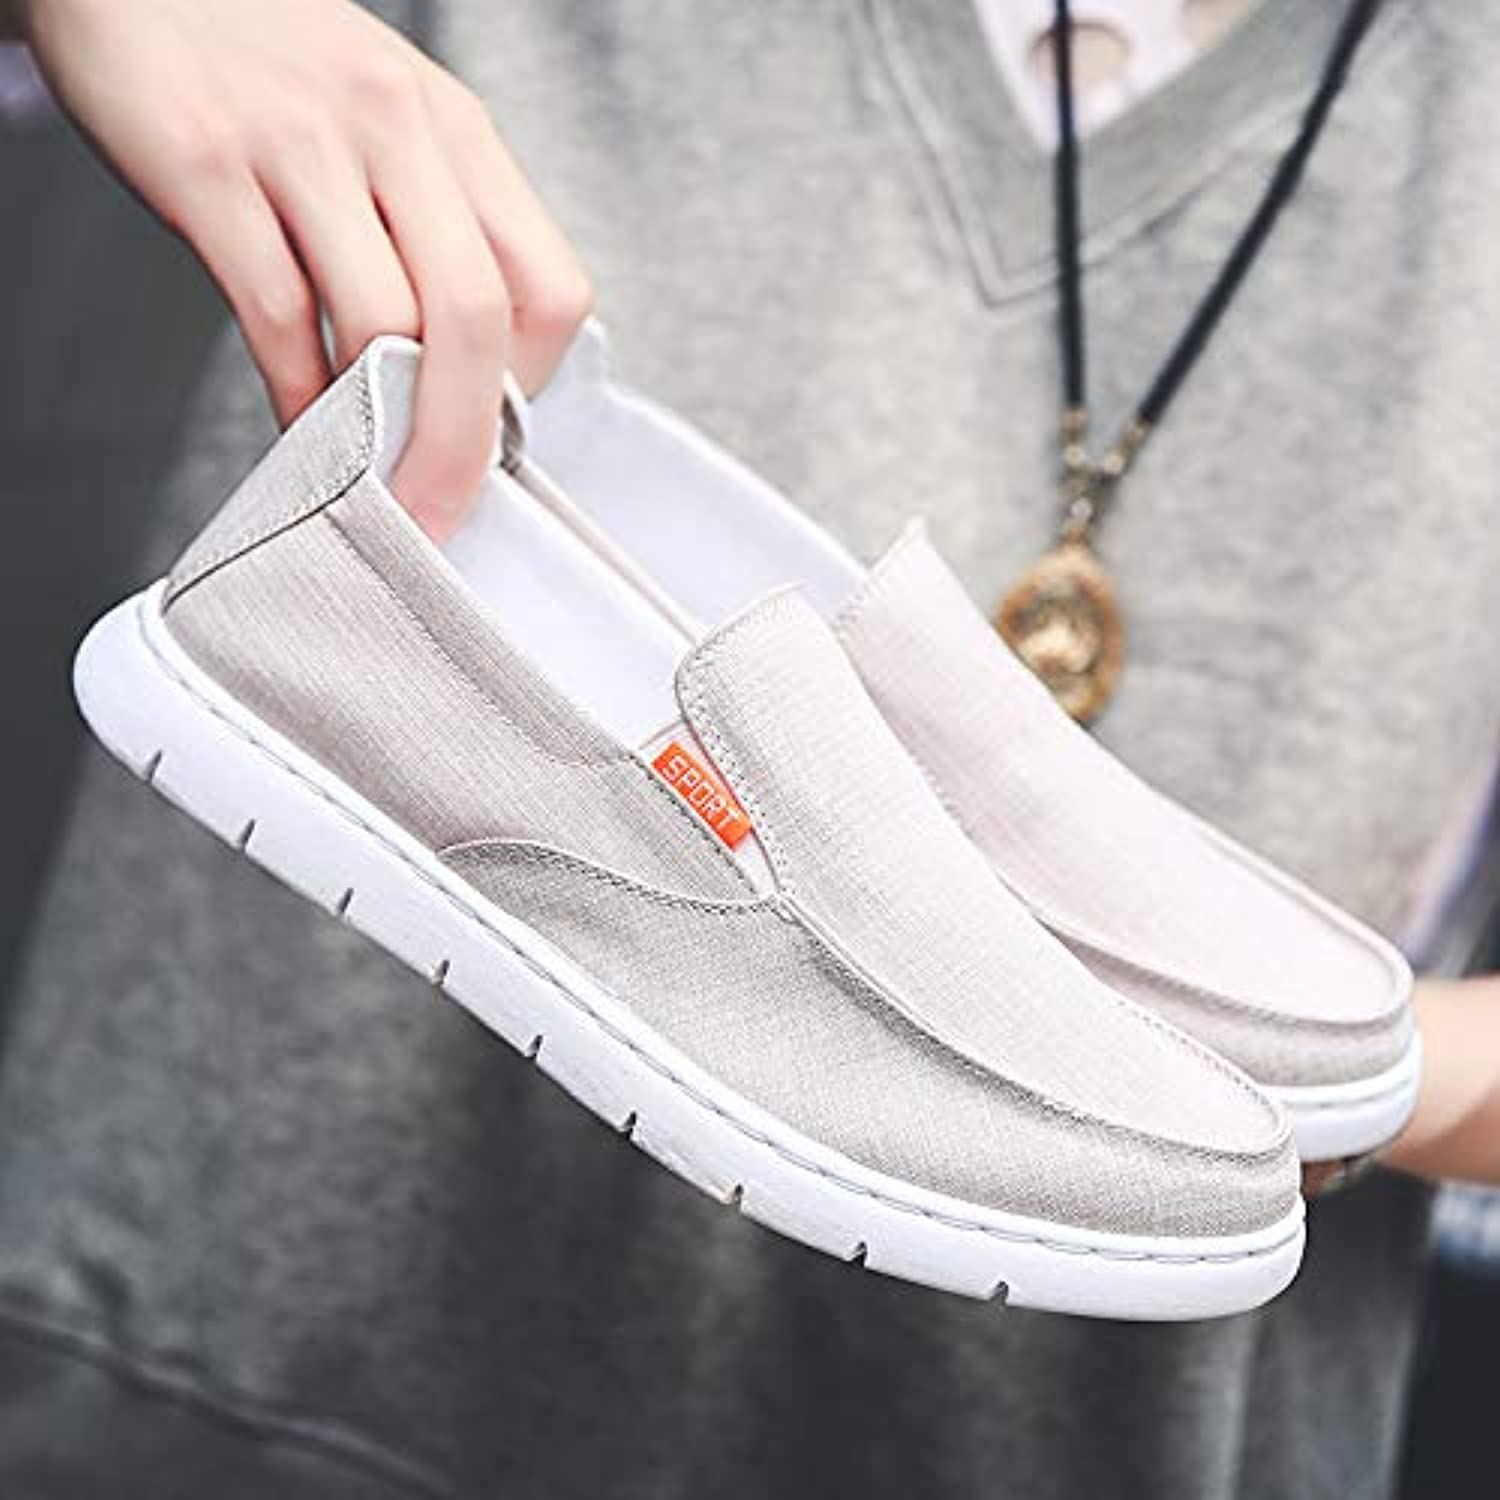 LOVDRAM Men'S shoes Season One Pedal Canvas shoes Men'S Fashion Casual Lazy Sets Of Feet Low To Help Casual shoes